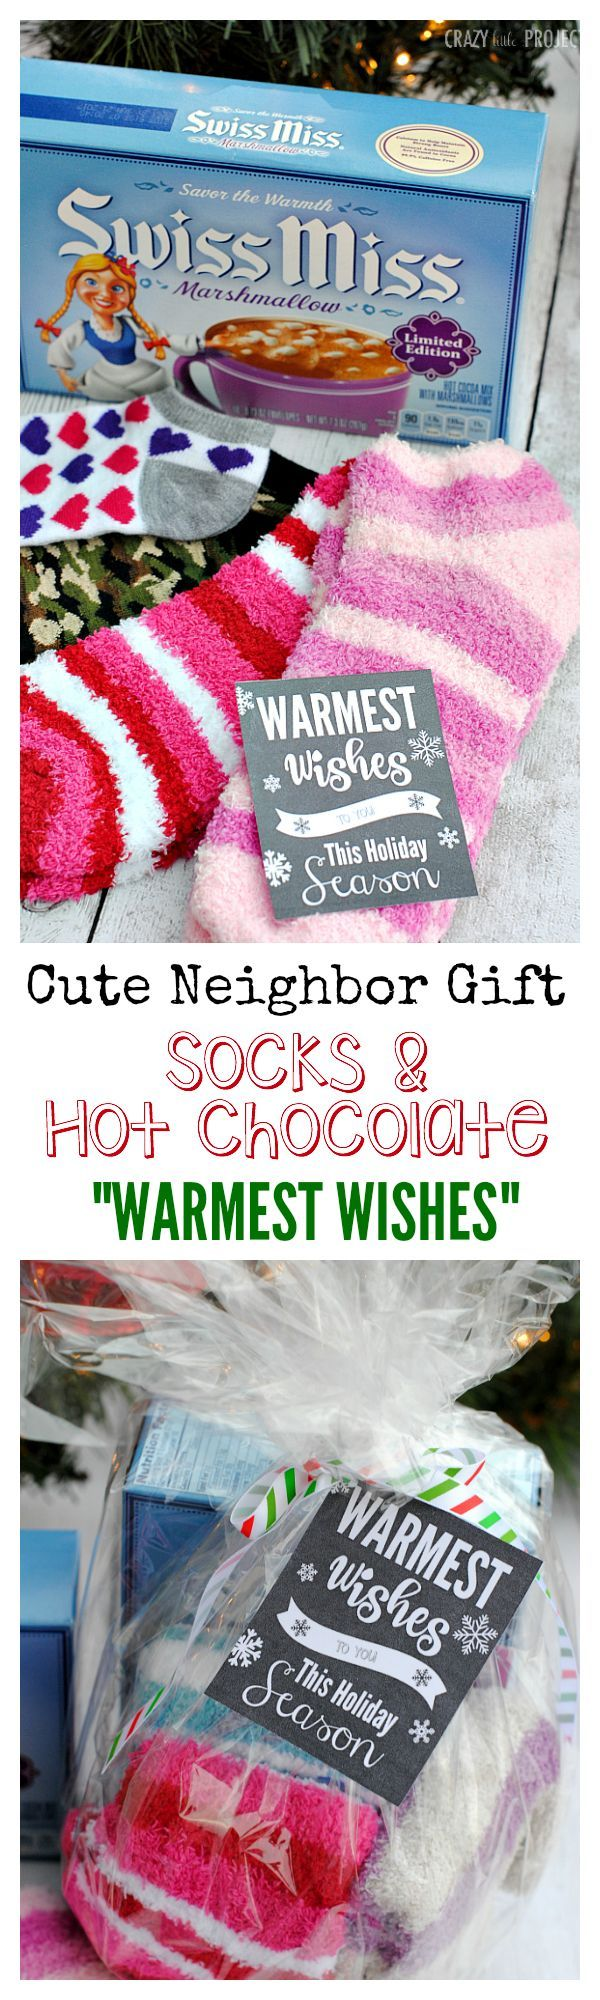 Warmest Wishes Neighbor Gift Idea #cheapgiftideas